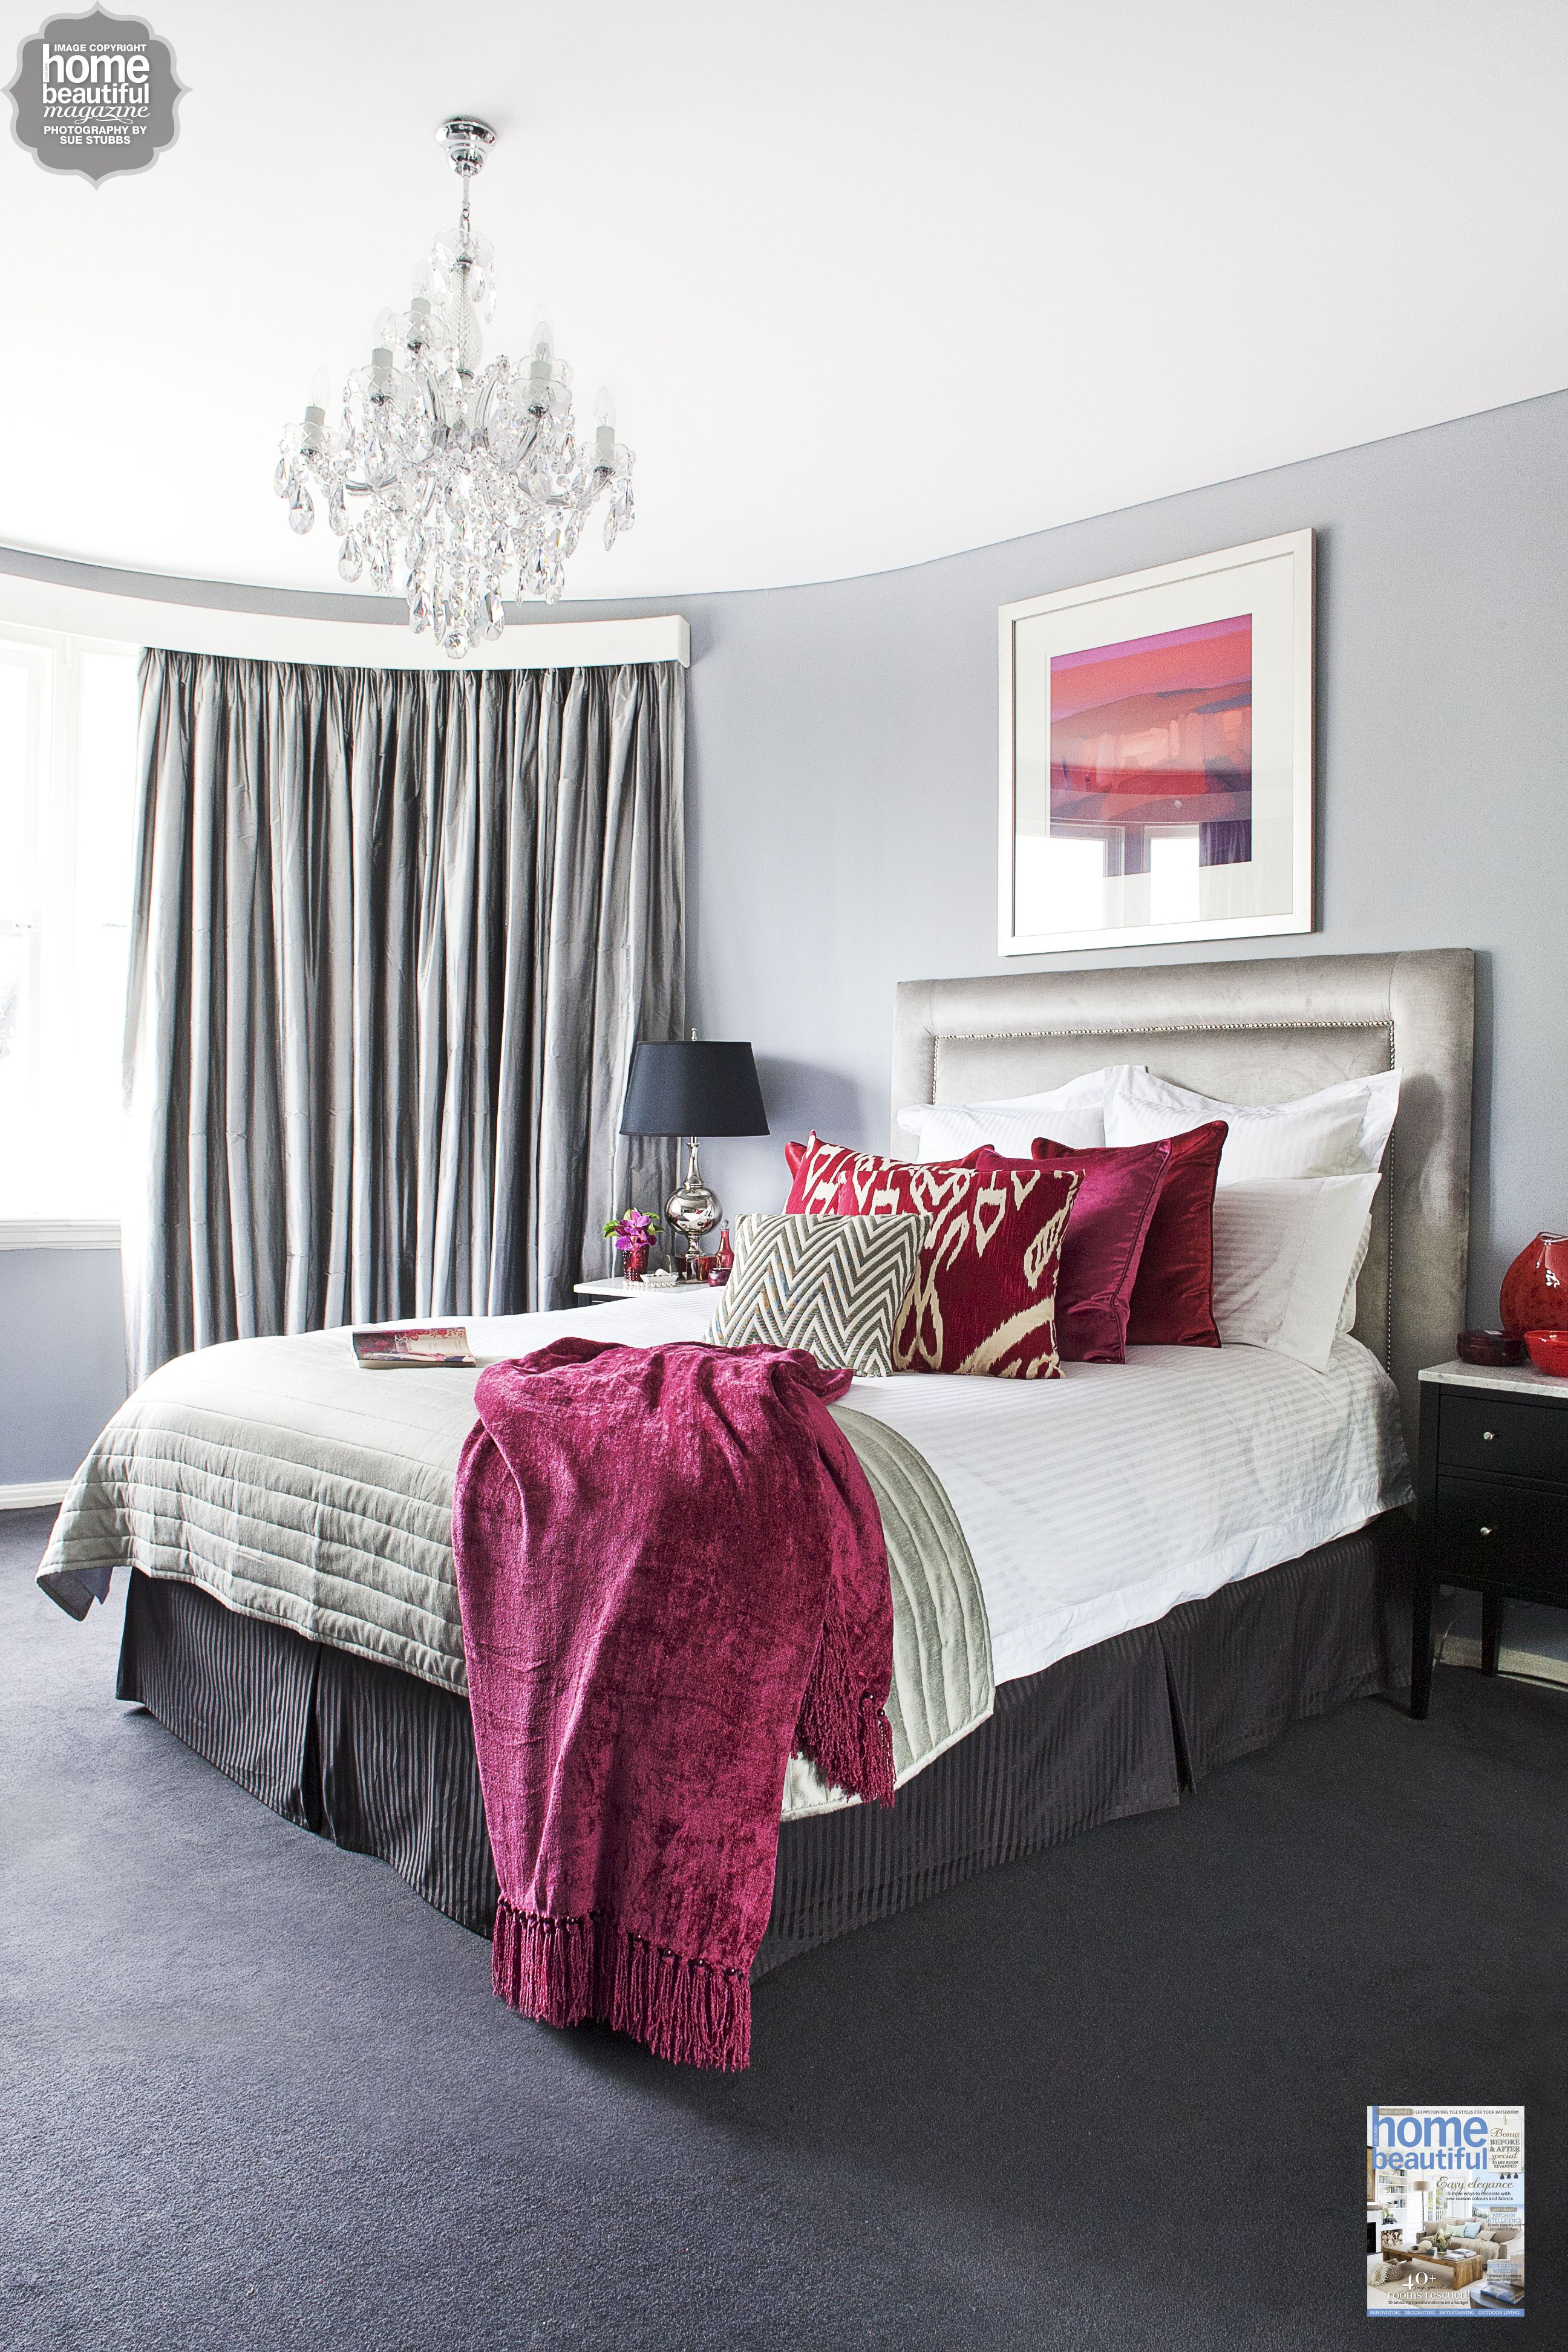 Burgundy Bedrooms Decorating on burgundy and cream bedrooms, french themed bedroom ideas for decorating, burgundy kitchen decorating, burgundy bedroom designs,